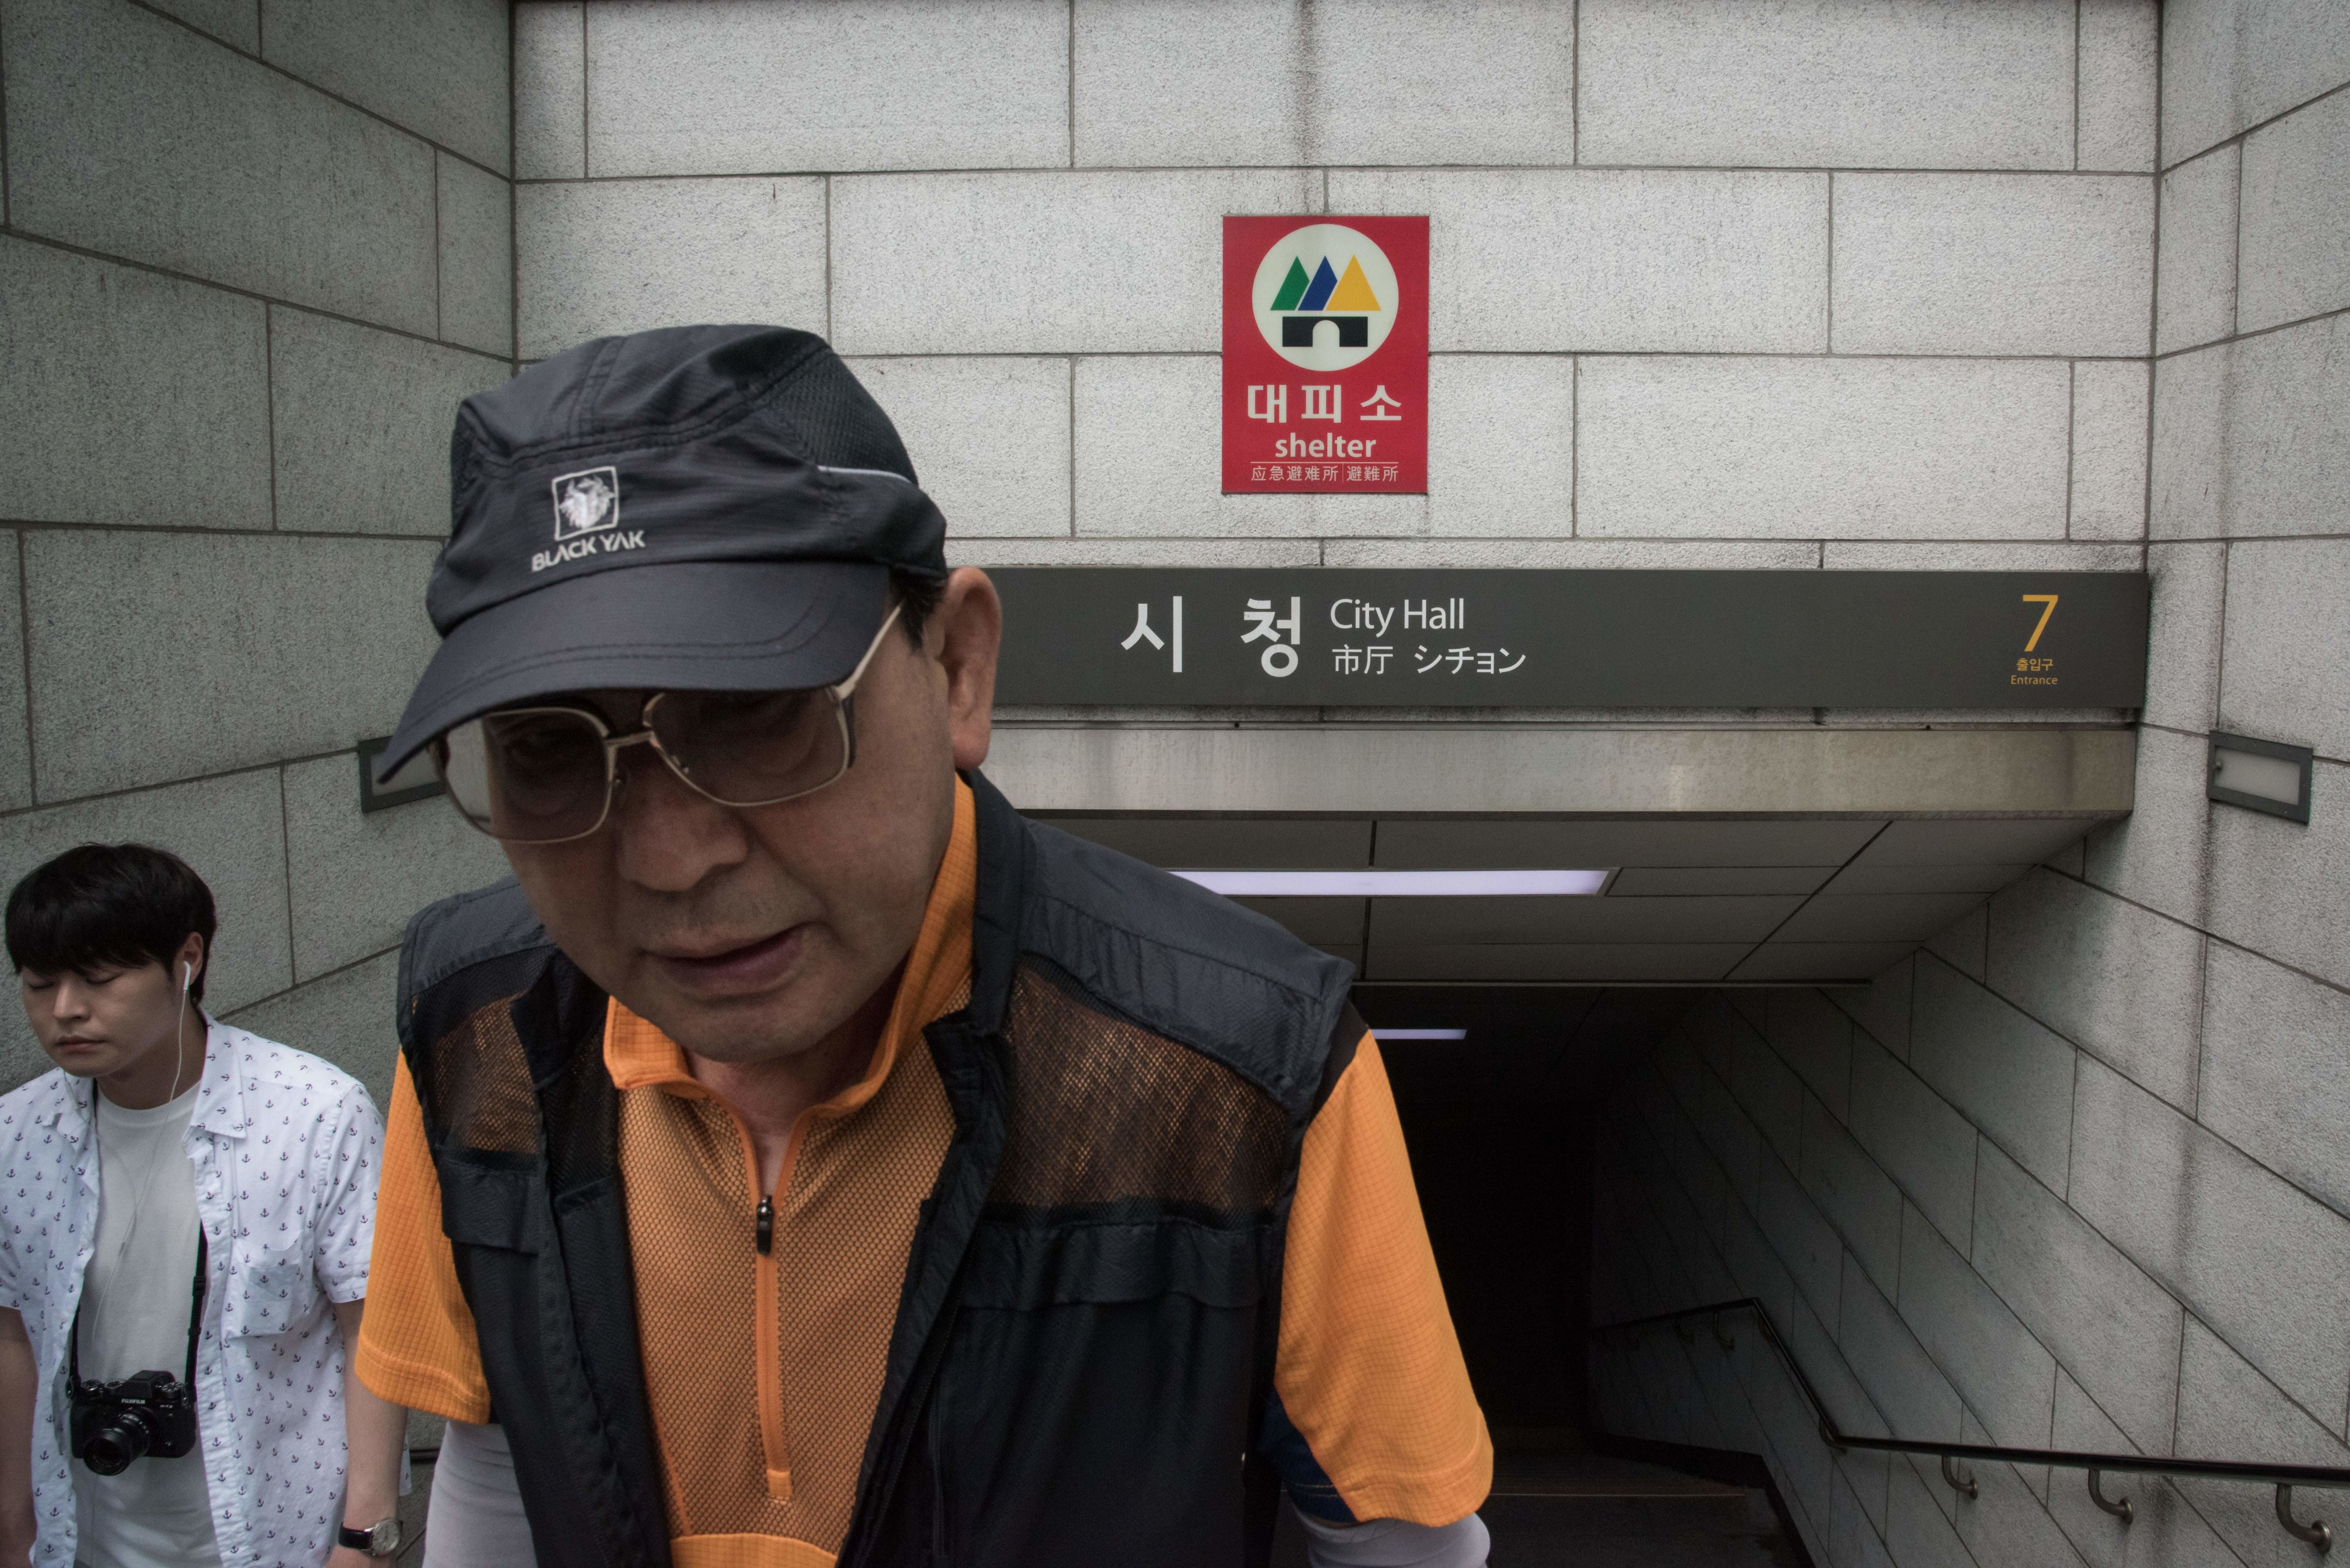 """A """"shelter"""" sign hangs at the entrance to a subway station in Seoul on July 5."""